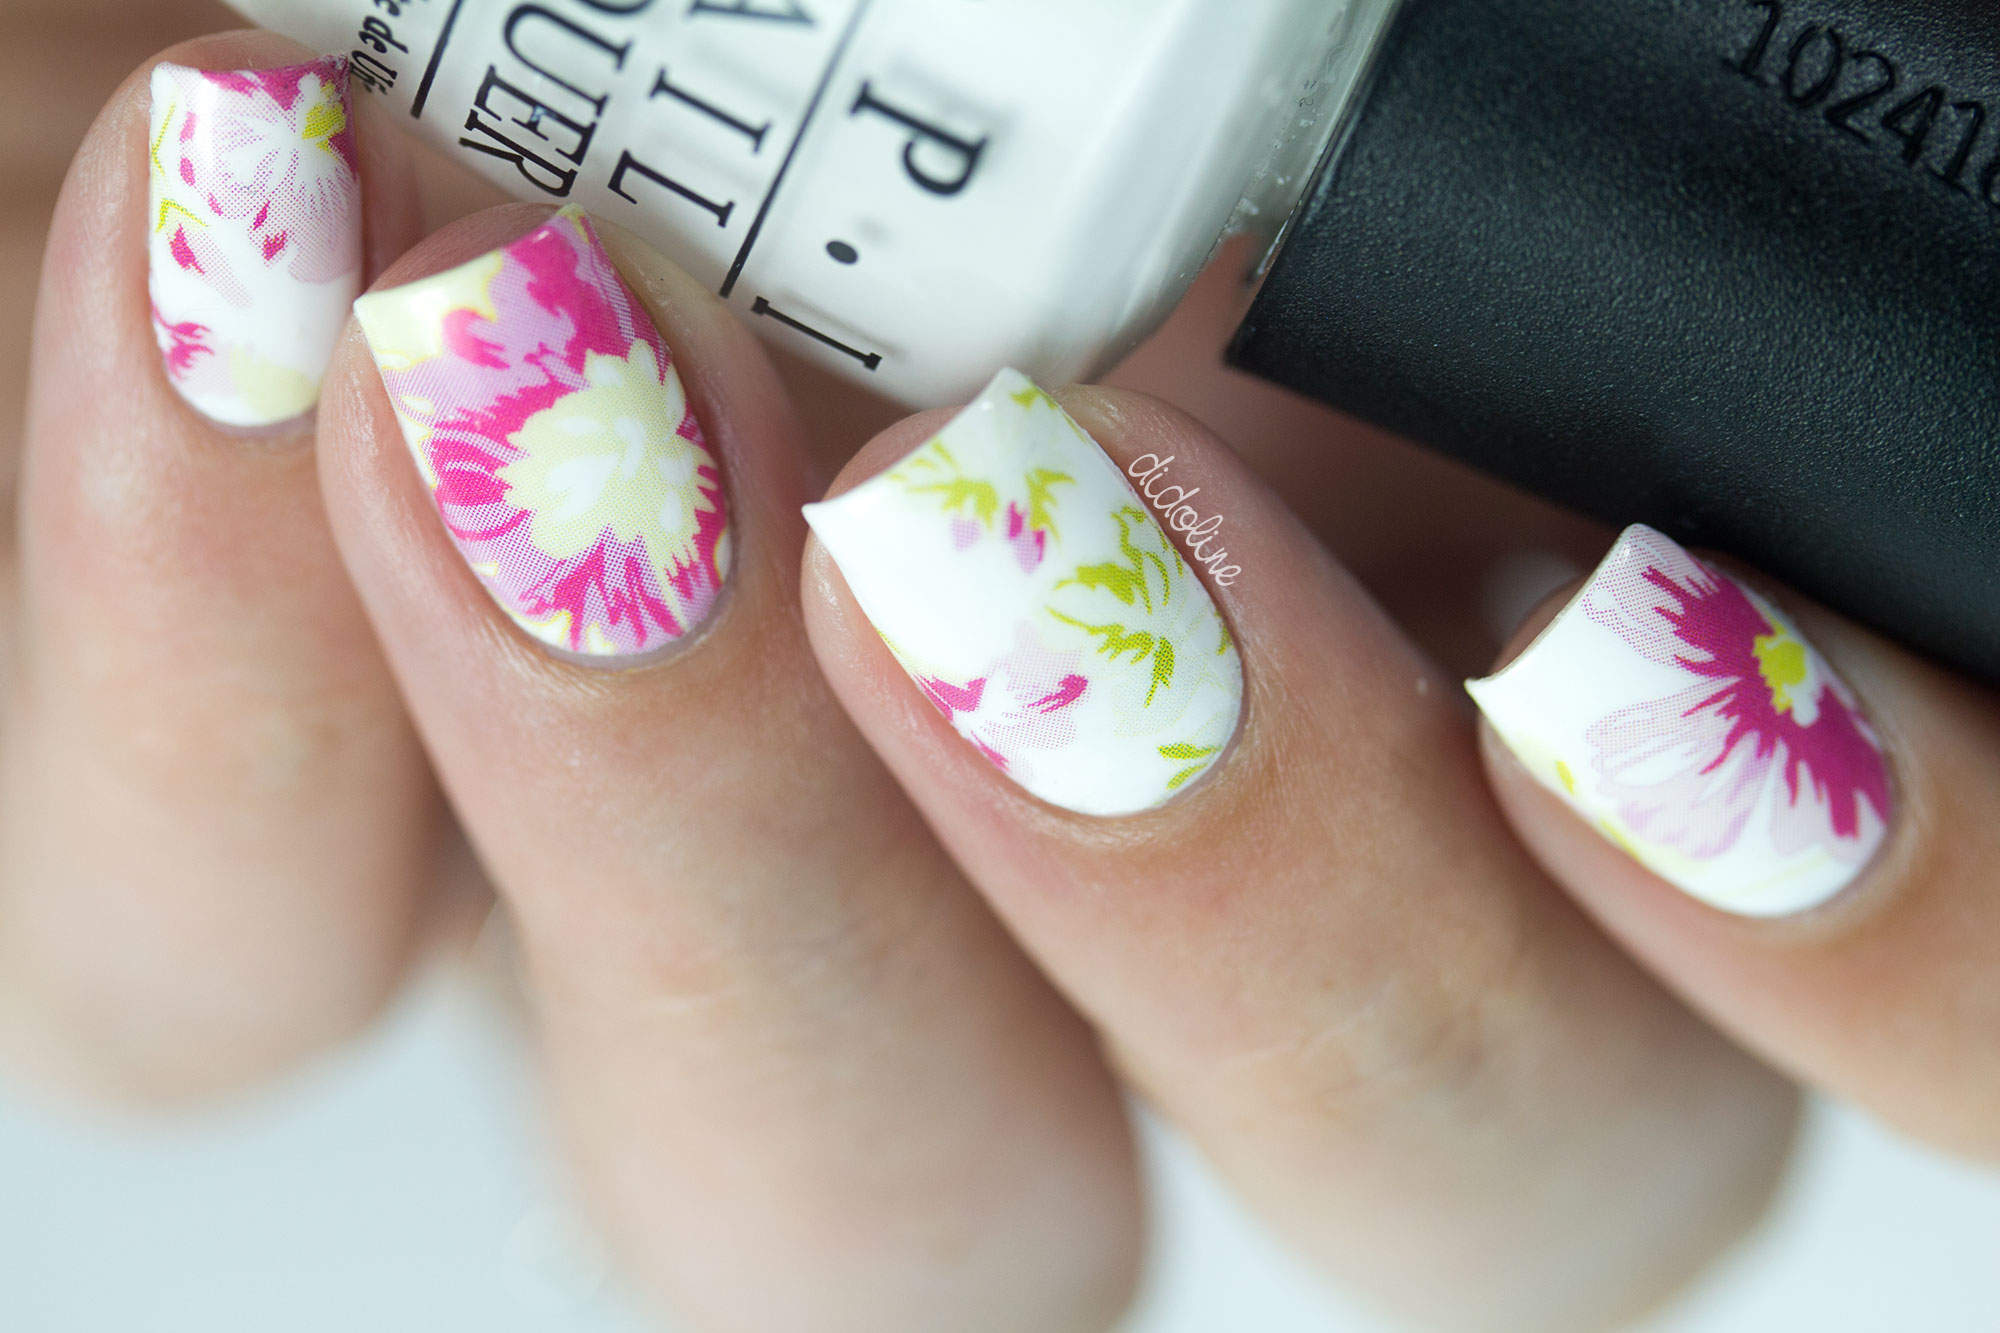 Floral Nail Art - Water Decals - Born Pretty Store - XF 1414